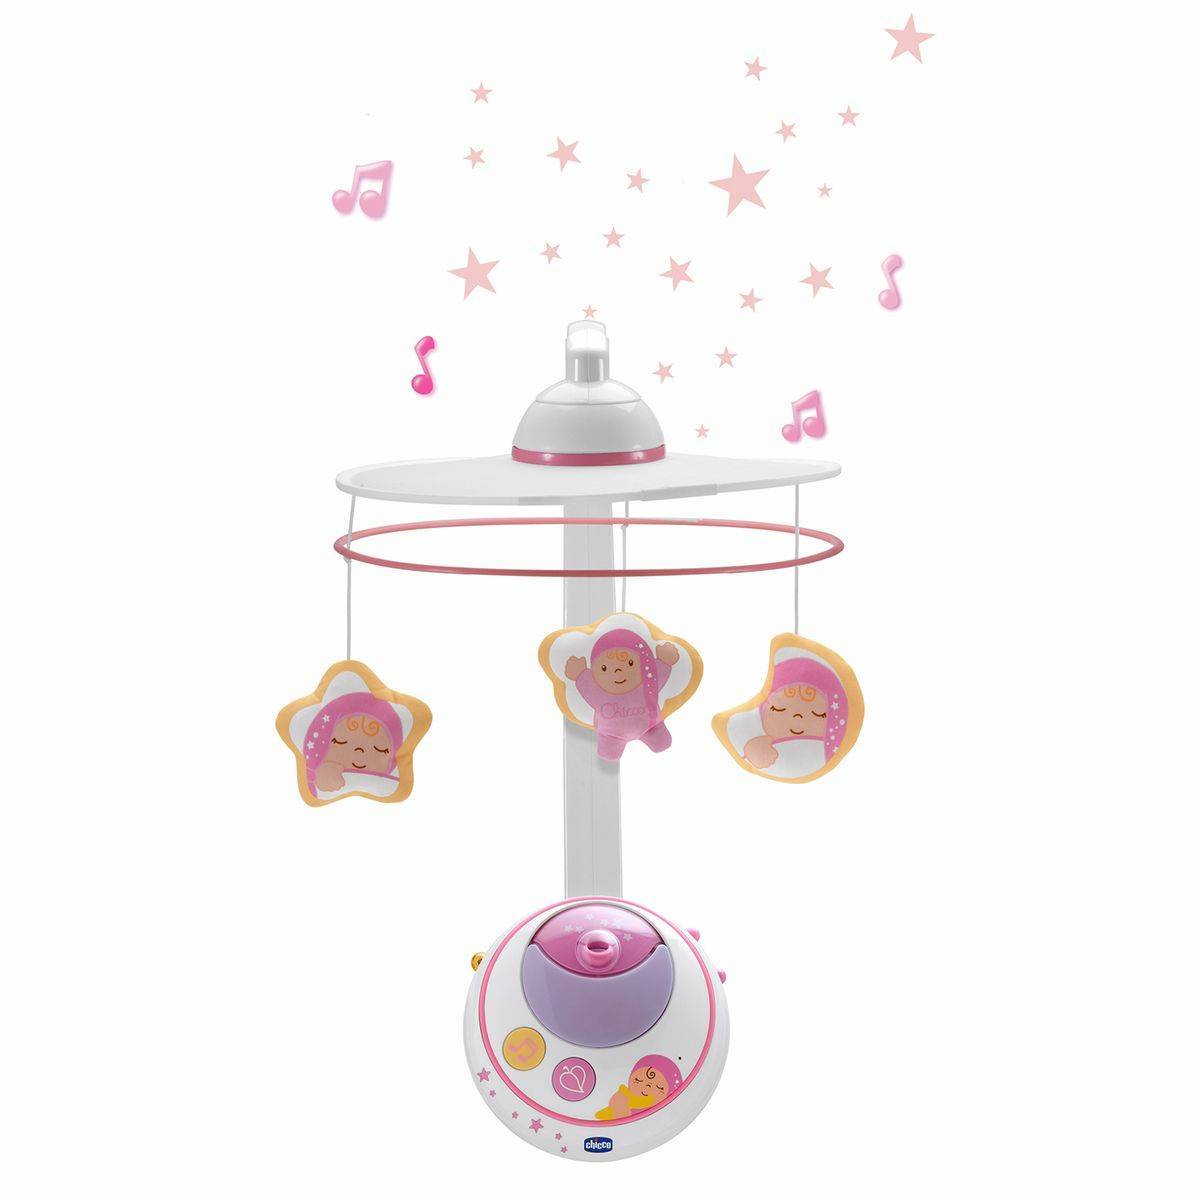 Chicco Mobile des Rêves double projection, rose - CHICCO